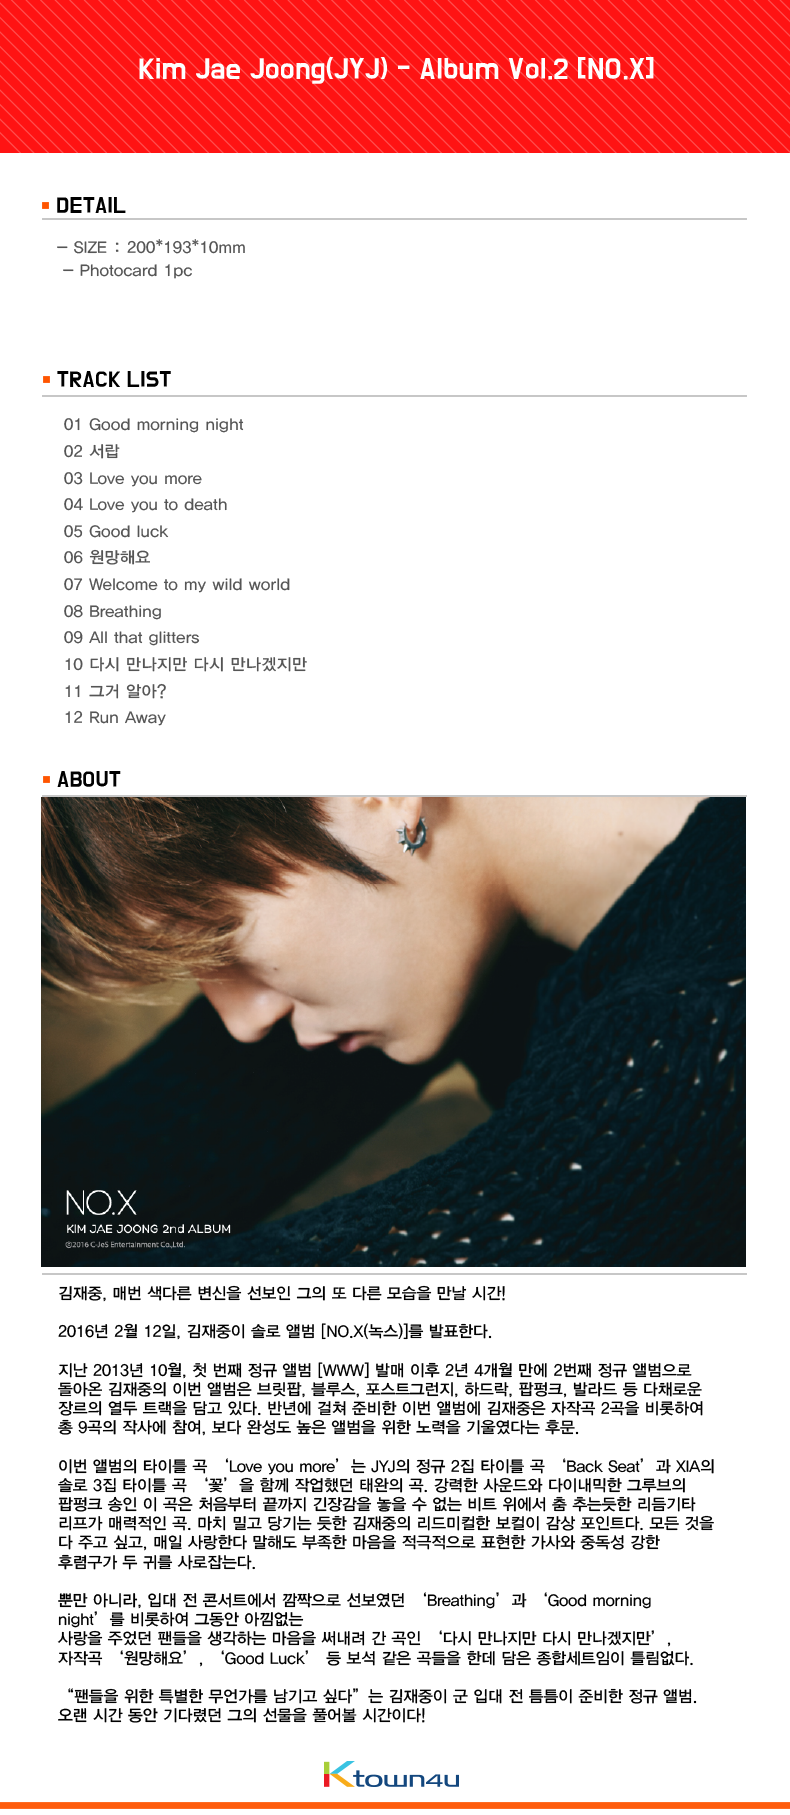 Kim Jae Joong(JYJ) - Album Vol.2 [NO.X]